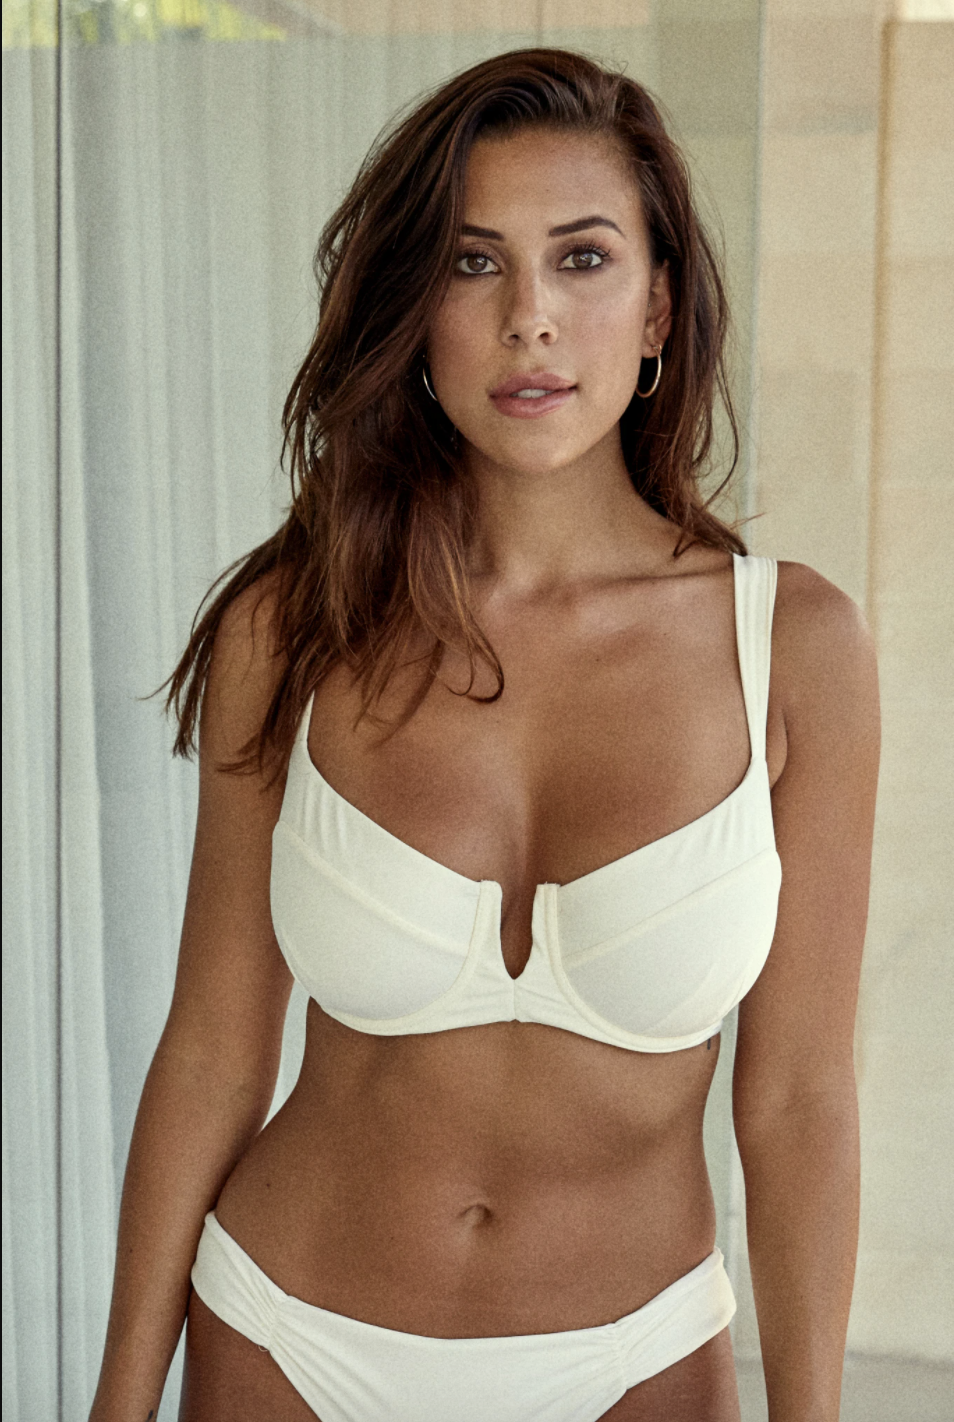 "<p><strong>Monday Swimwear</strong></p><p>mondayswimwear.com</p><p><strong>$94.00</strong></p><p><a href=""https://mondayswimwear.com/collections/styles-for-cup-sizes-e-g/products/clovelly-top-ivory-sig"" rel=""nofollow noopener"" target=""_blank"" data-ylk=""slk:Shop Now"" class=""link rapid-noclick-resp"">Shop Now</a></p><p>Monday Swimwear features ""iconic feminine designs"" that are stylish and sexy. Fitting cup sizes B-E<strong>, this top offers a comfy, supportive fit </strong>for those with a larger bust. This best-selling style is available in ten shades and patterns including soft neutrals and cheetah print. Reviewers recommend checking out the brand's <a href=""https://mondayswimwear.com/pages/fit-guide-2019#tops"" rel=""nofollow noopener"" target=""_blank"" data-ylk=""slk:size guide"" class=""link rapid-noclick-resp"">size guide</a> to determine your perfect fit. </p>"